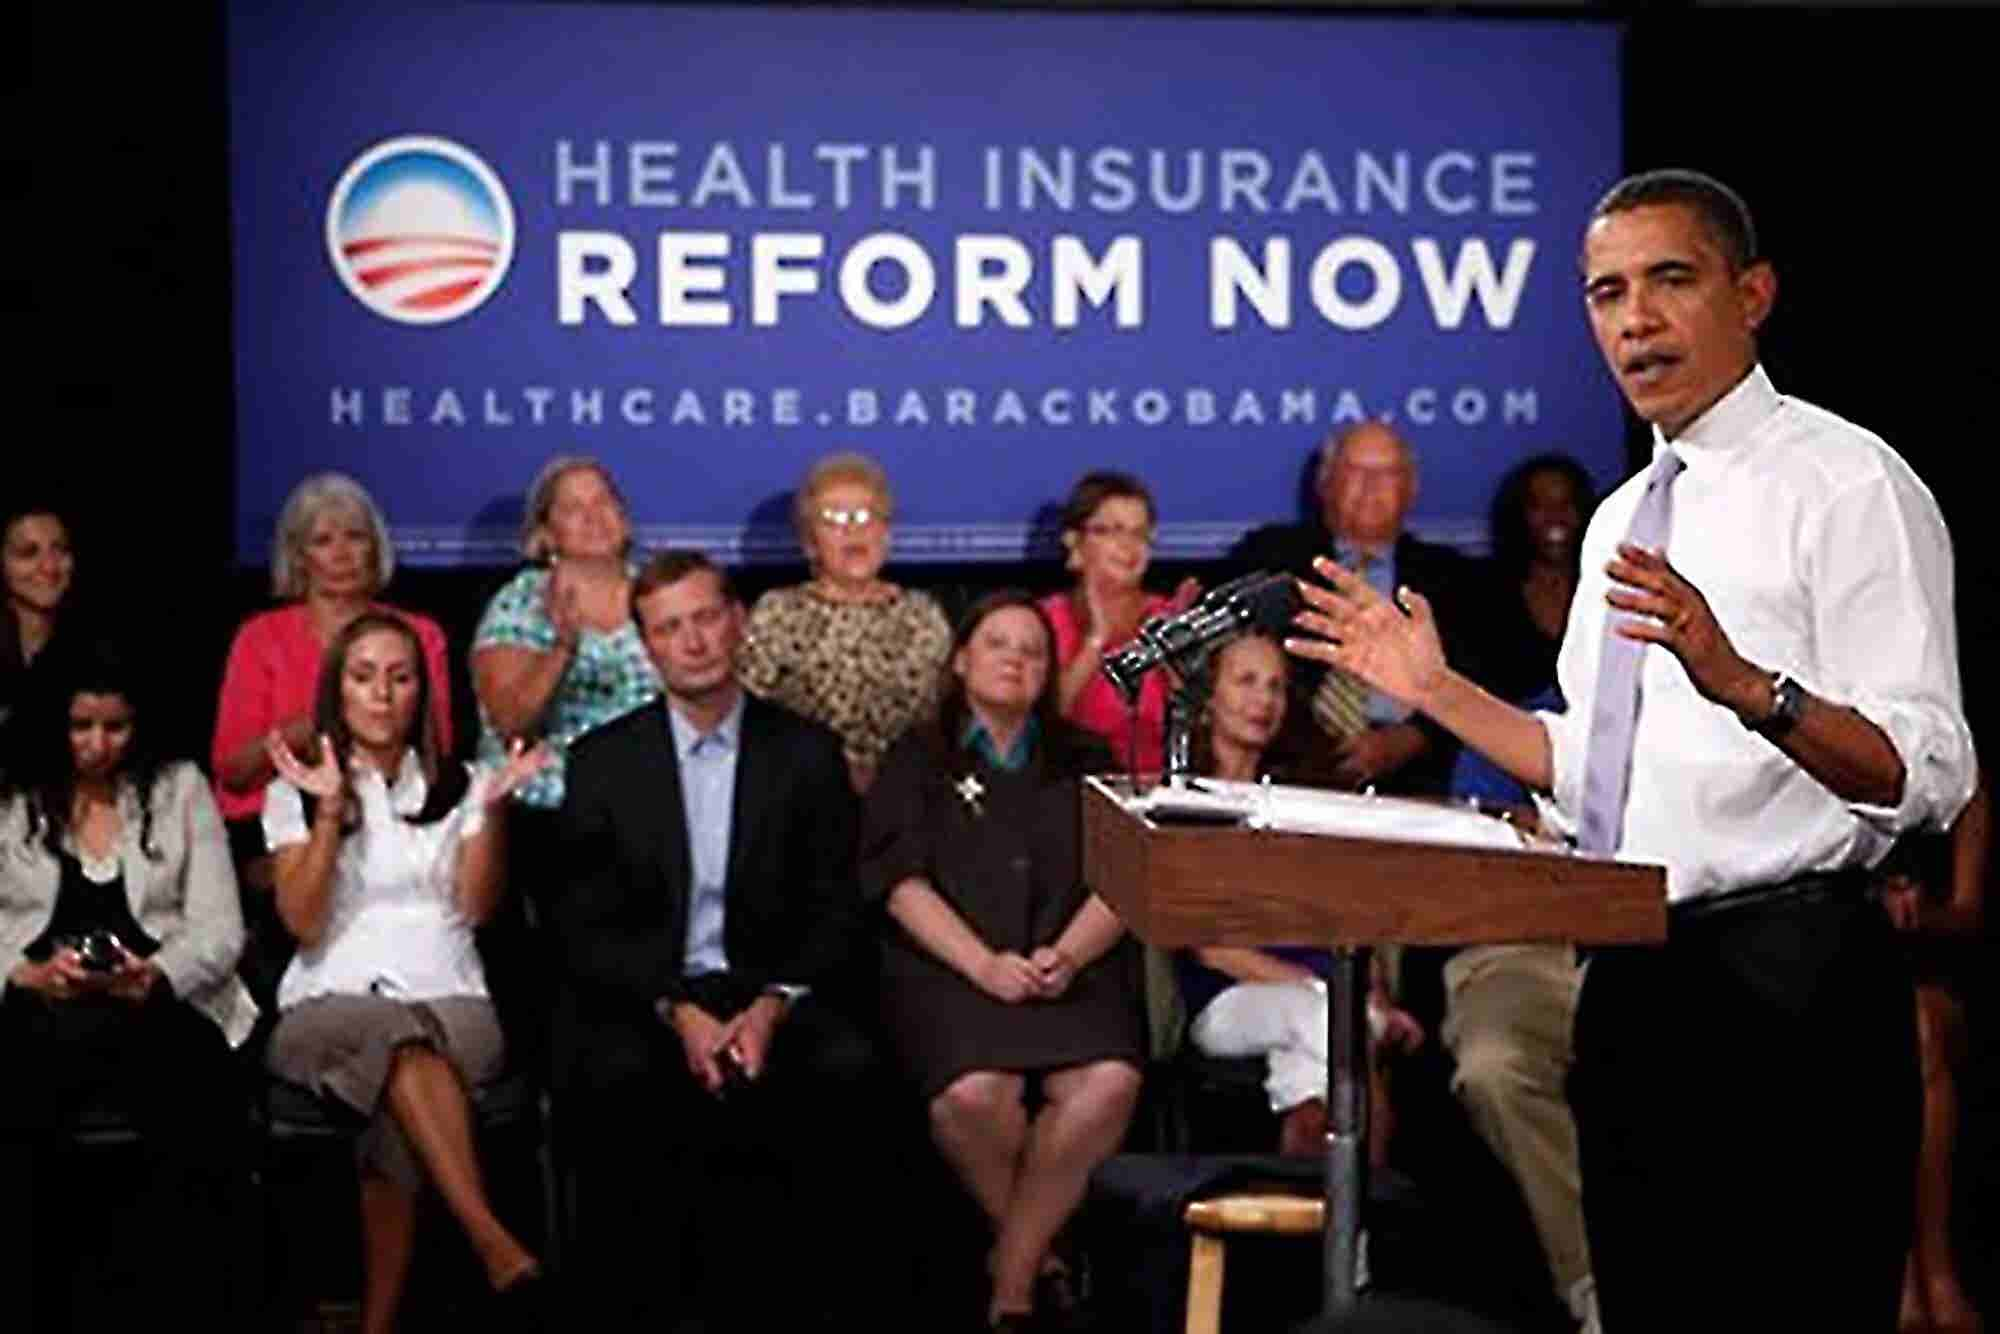 Still Stumped by Obamacare? Health Co-Ops May be an Option.